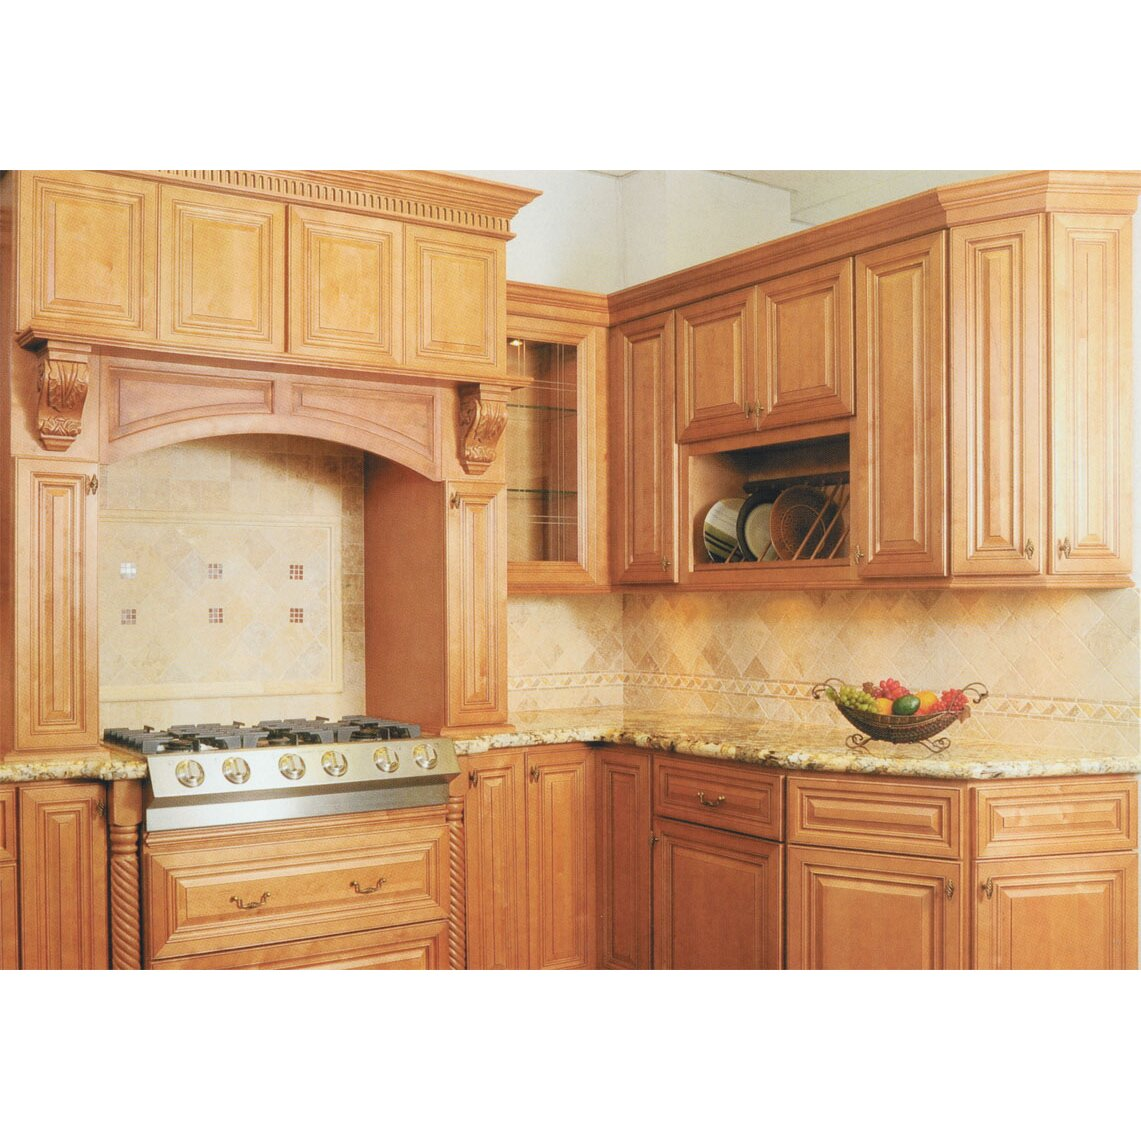 30 inch kitchen cabinets century home living 30 quot x 36 quot kitchen wall cabinet 10196